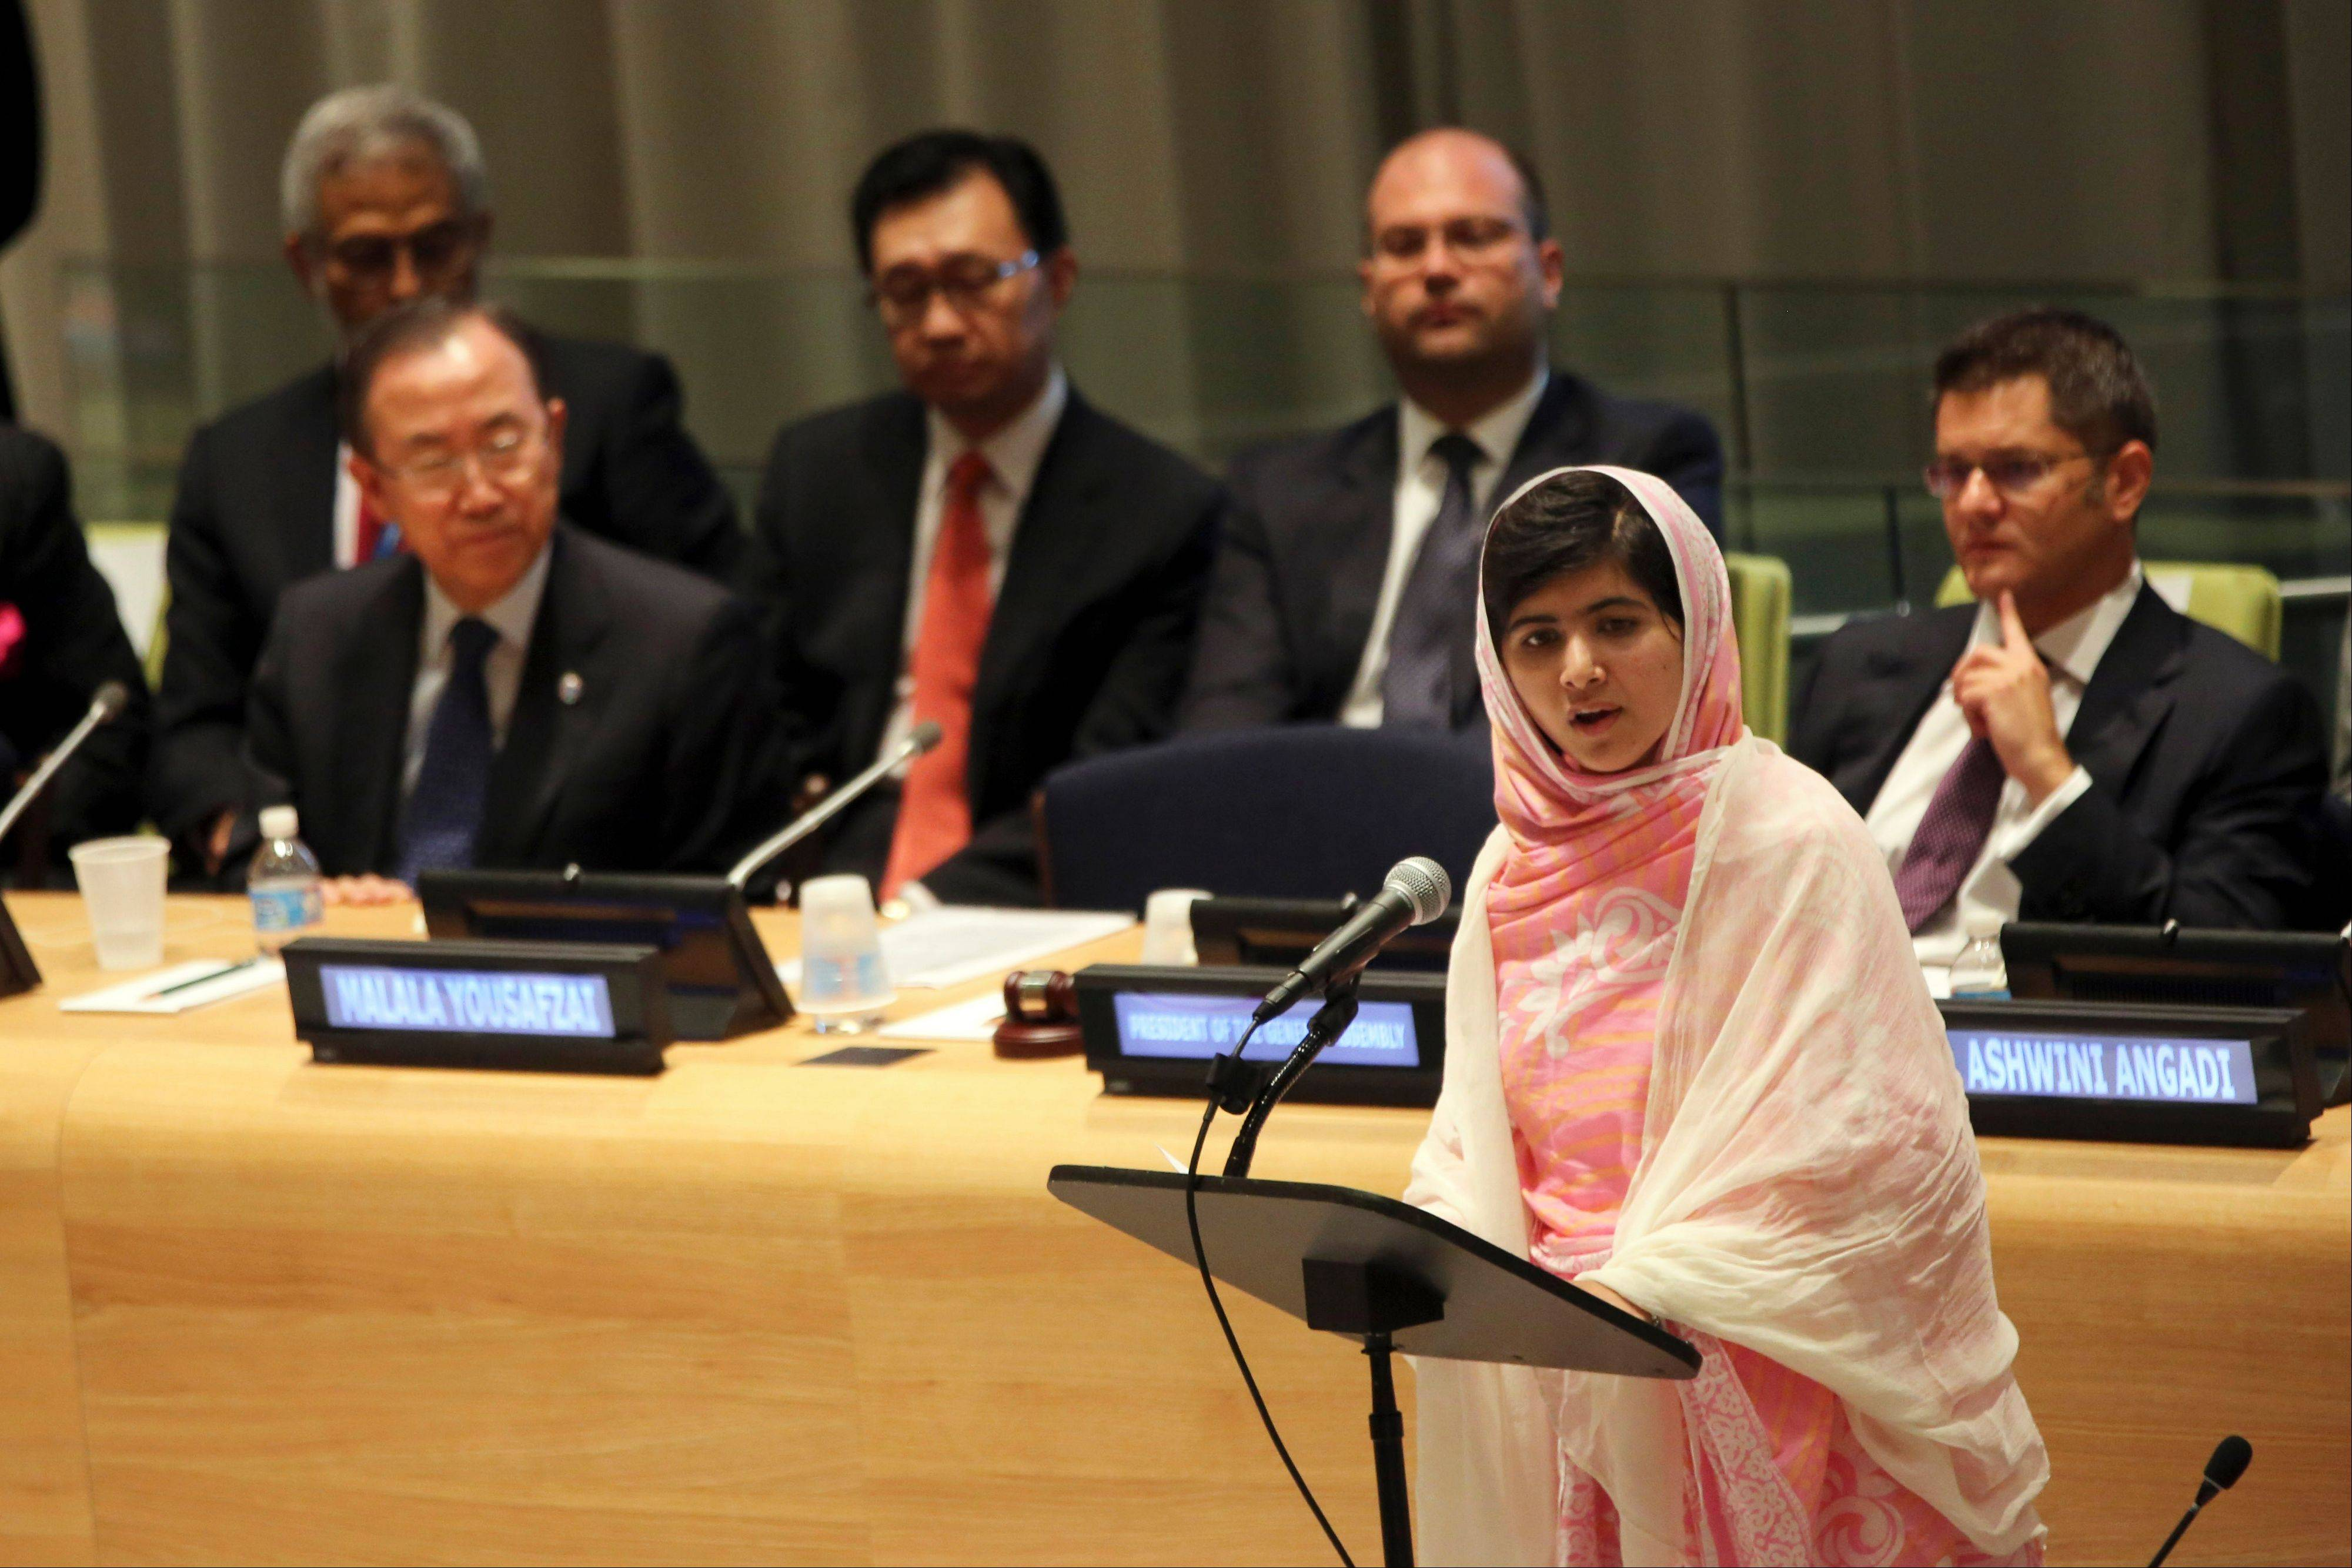 United Nations Secretary-General Ban Ki-moon, left, listens as Malala Yousafzai, right, addresses the �Malala Day� Youth Assembly, Friday, July 12, 2013 at United Nations headquarters. Malala Yousafzai, the Pakistani teenager shot by the Taliban for promoting education for girls, celebrated her 16th birthday on Friday addressing the United Nations.